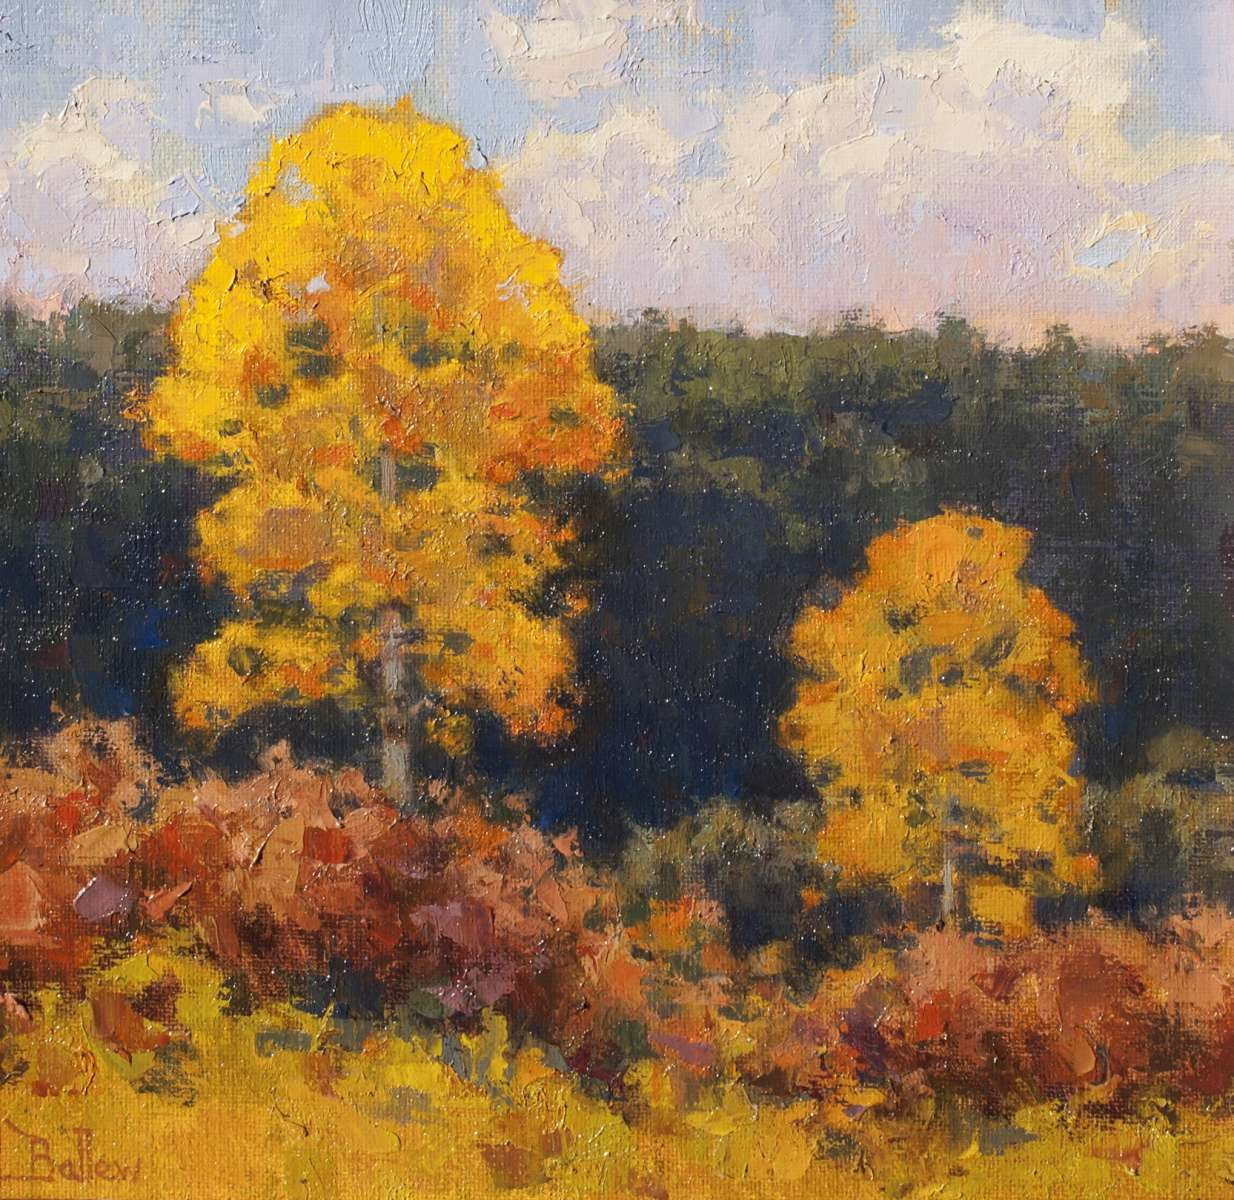 October Oaks and Aspens by David Ballew